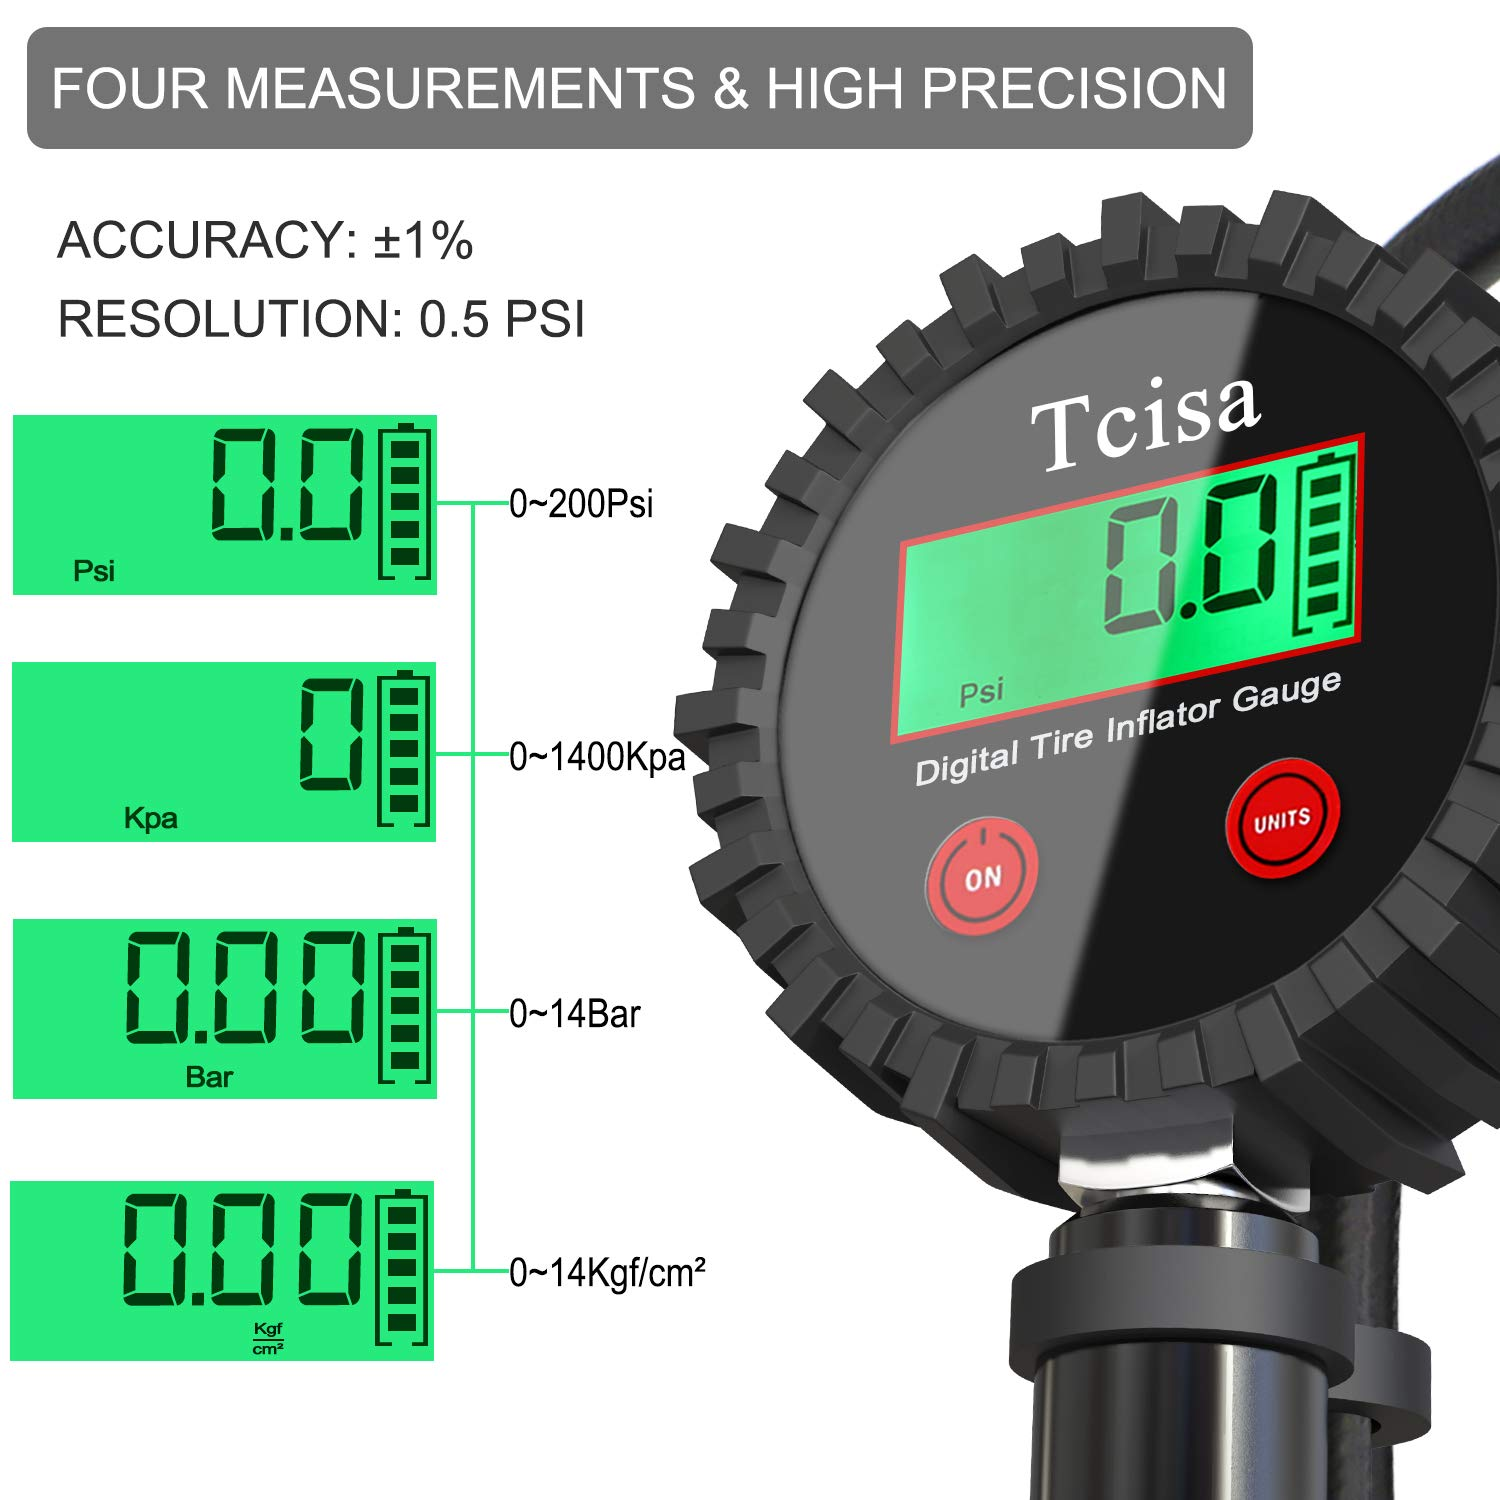 Tcisa Tire Inflator with Pressure Gauge - Digital Heavy Duty 200 PSI Air Pressure Gauge with Leakproof Air Chuck Valve Extender Rubber Air Hose Quick-Connect Fitting by Tcisa (Image #2)